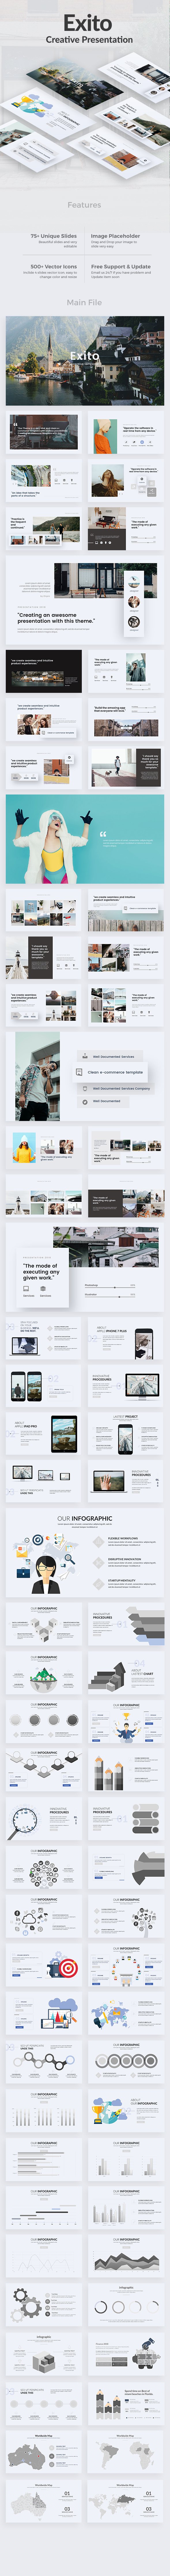 Exito Creative Google Slide Template - Google Slides Presentation Templates